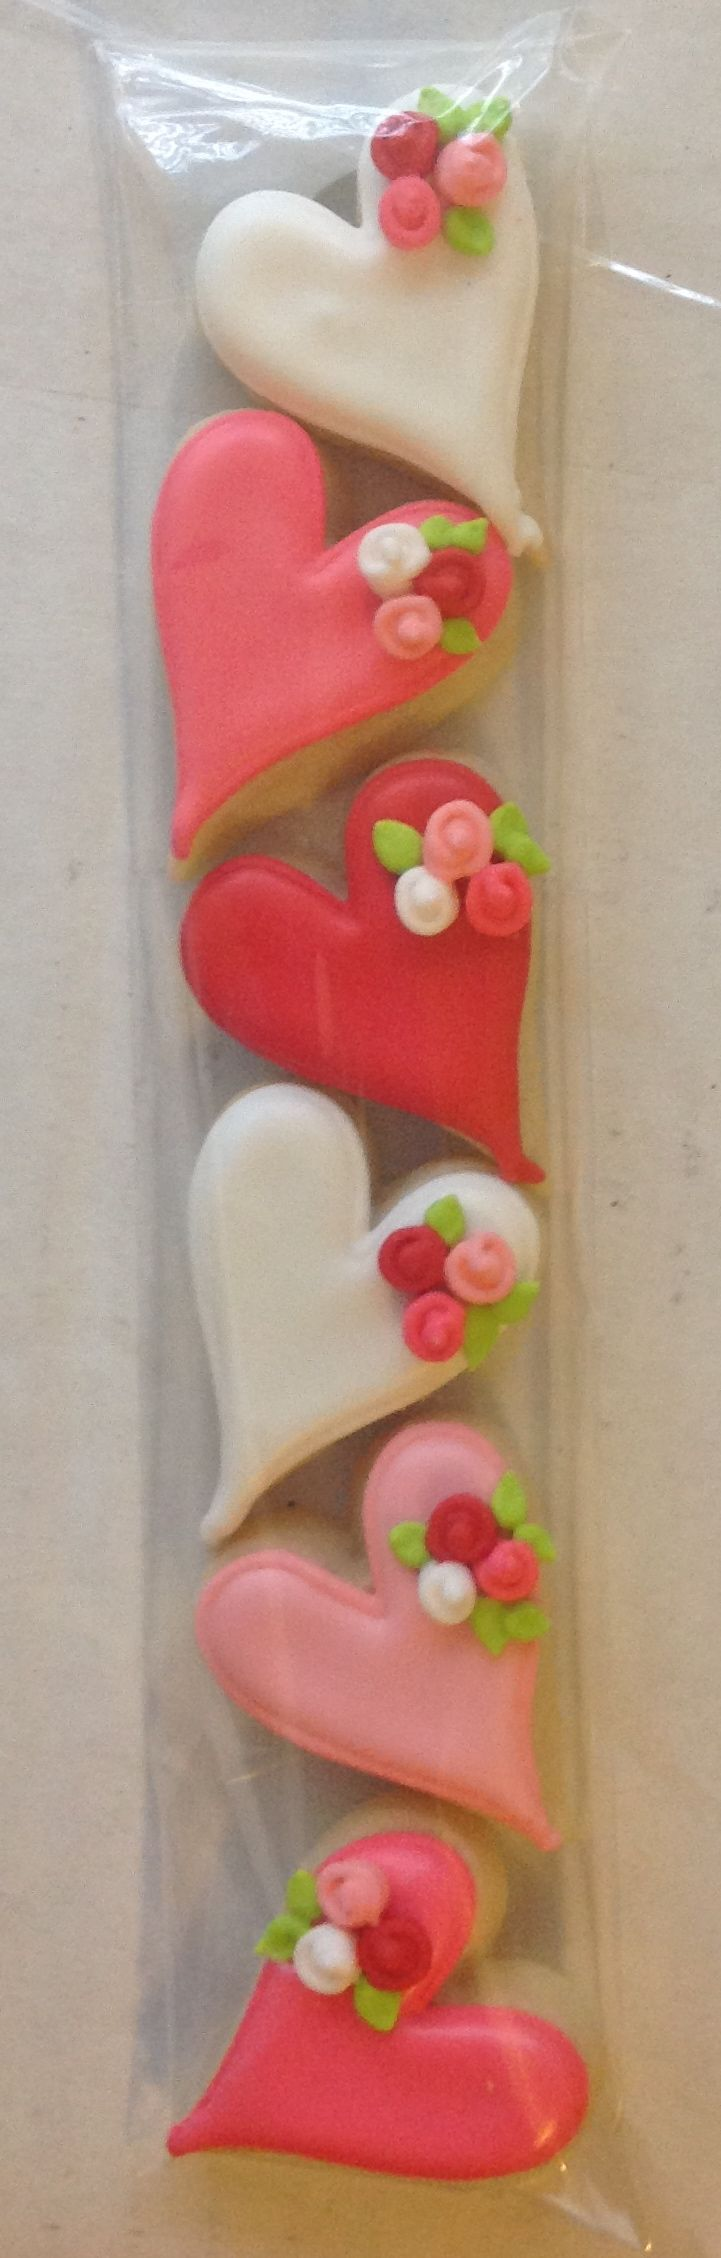 galletas de corazon